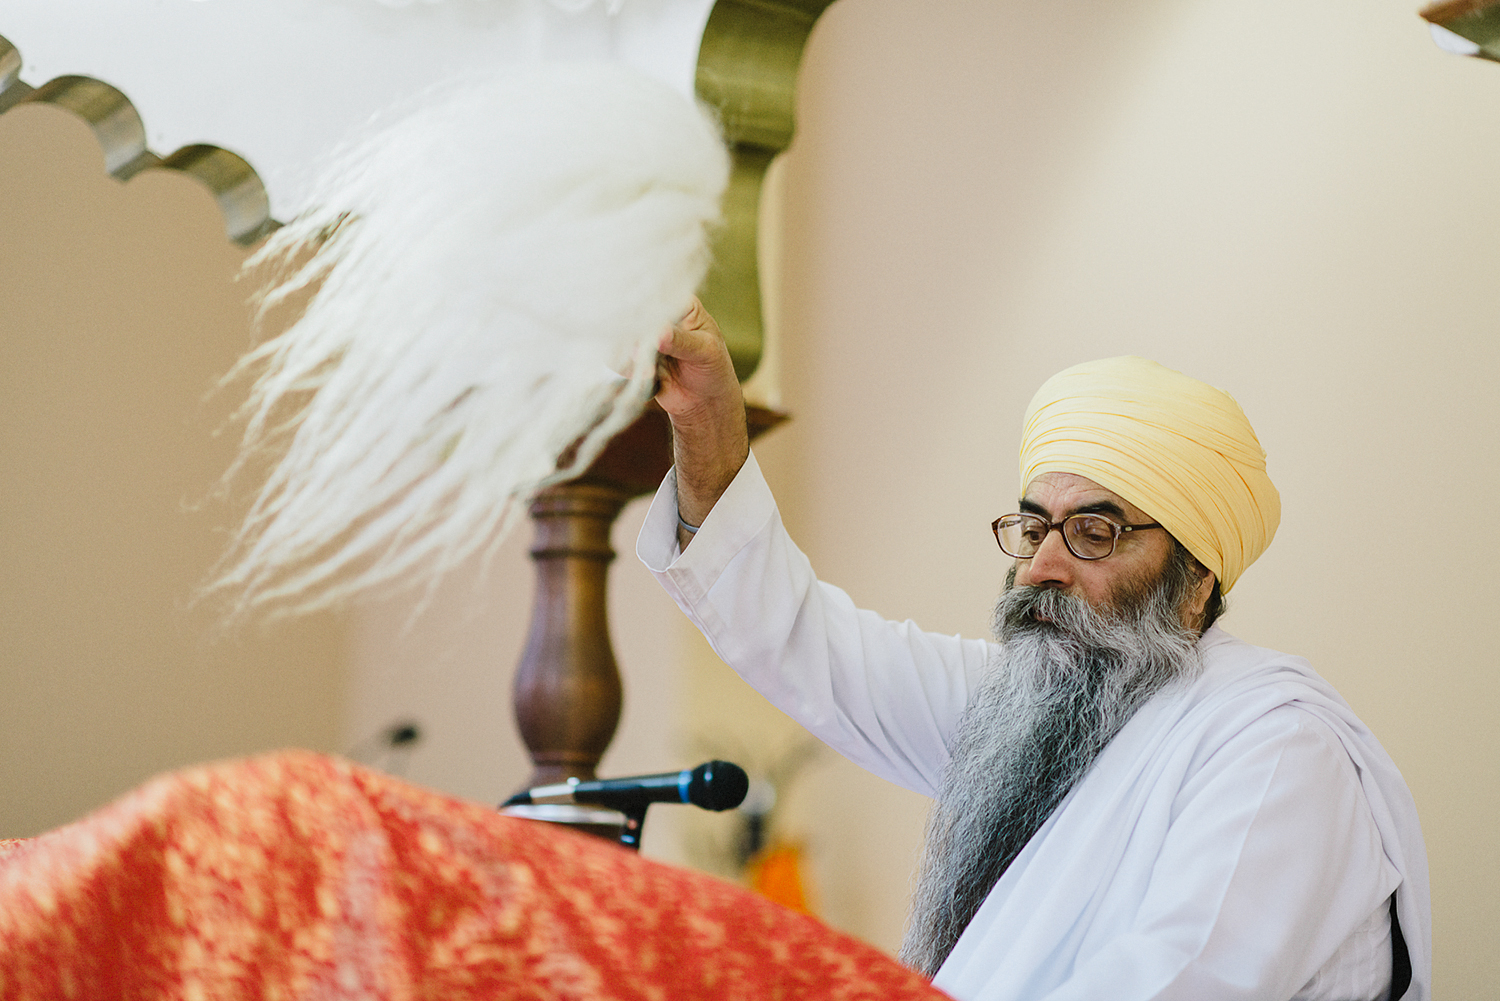 Toronto-Photojournalism-wedding-photographers-3B-Photography-Candid-Documentary-Film-Photography-Analog-Ontario-Hamilton-Port-Perry-Venue-temple-ceremony-sikh-tradition.jpg